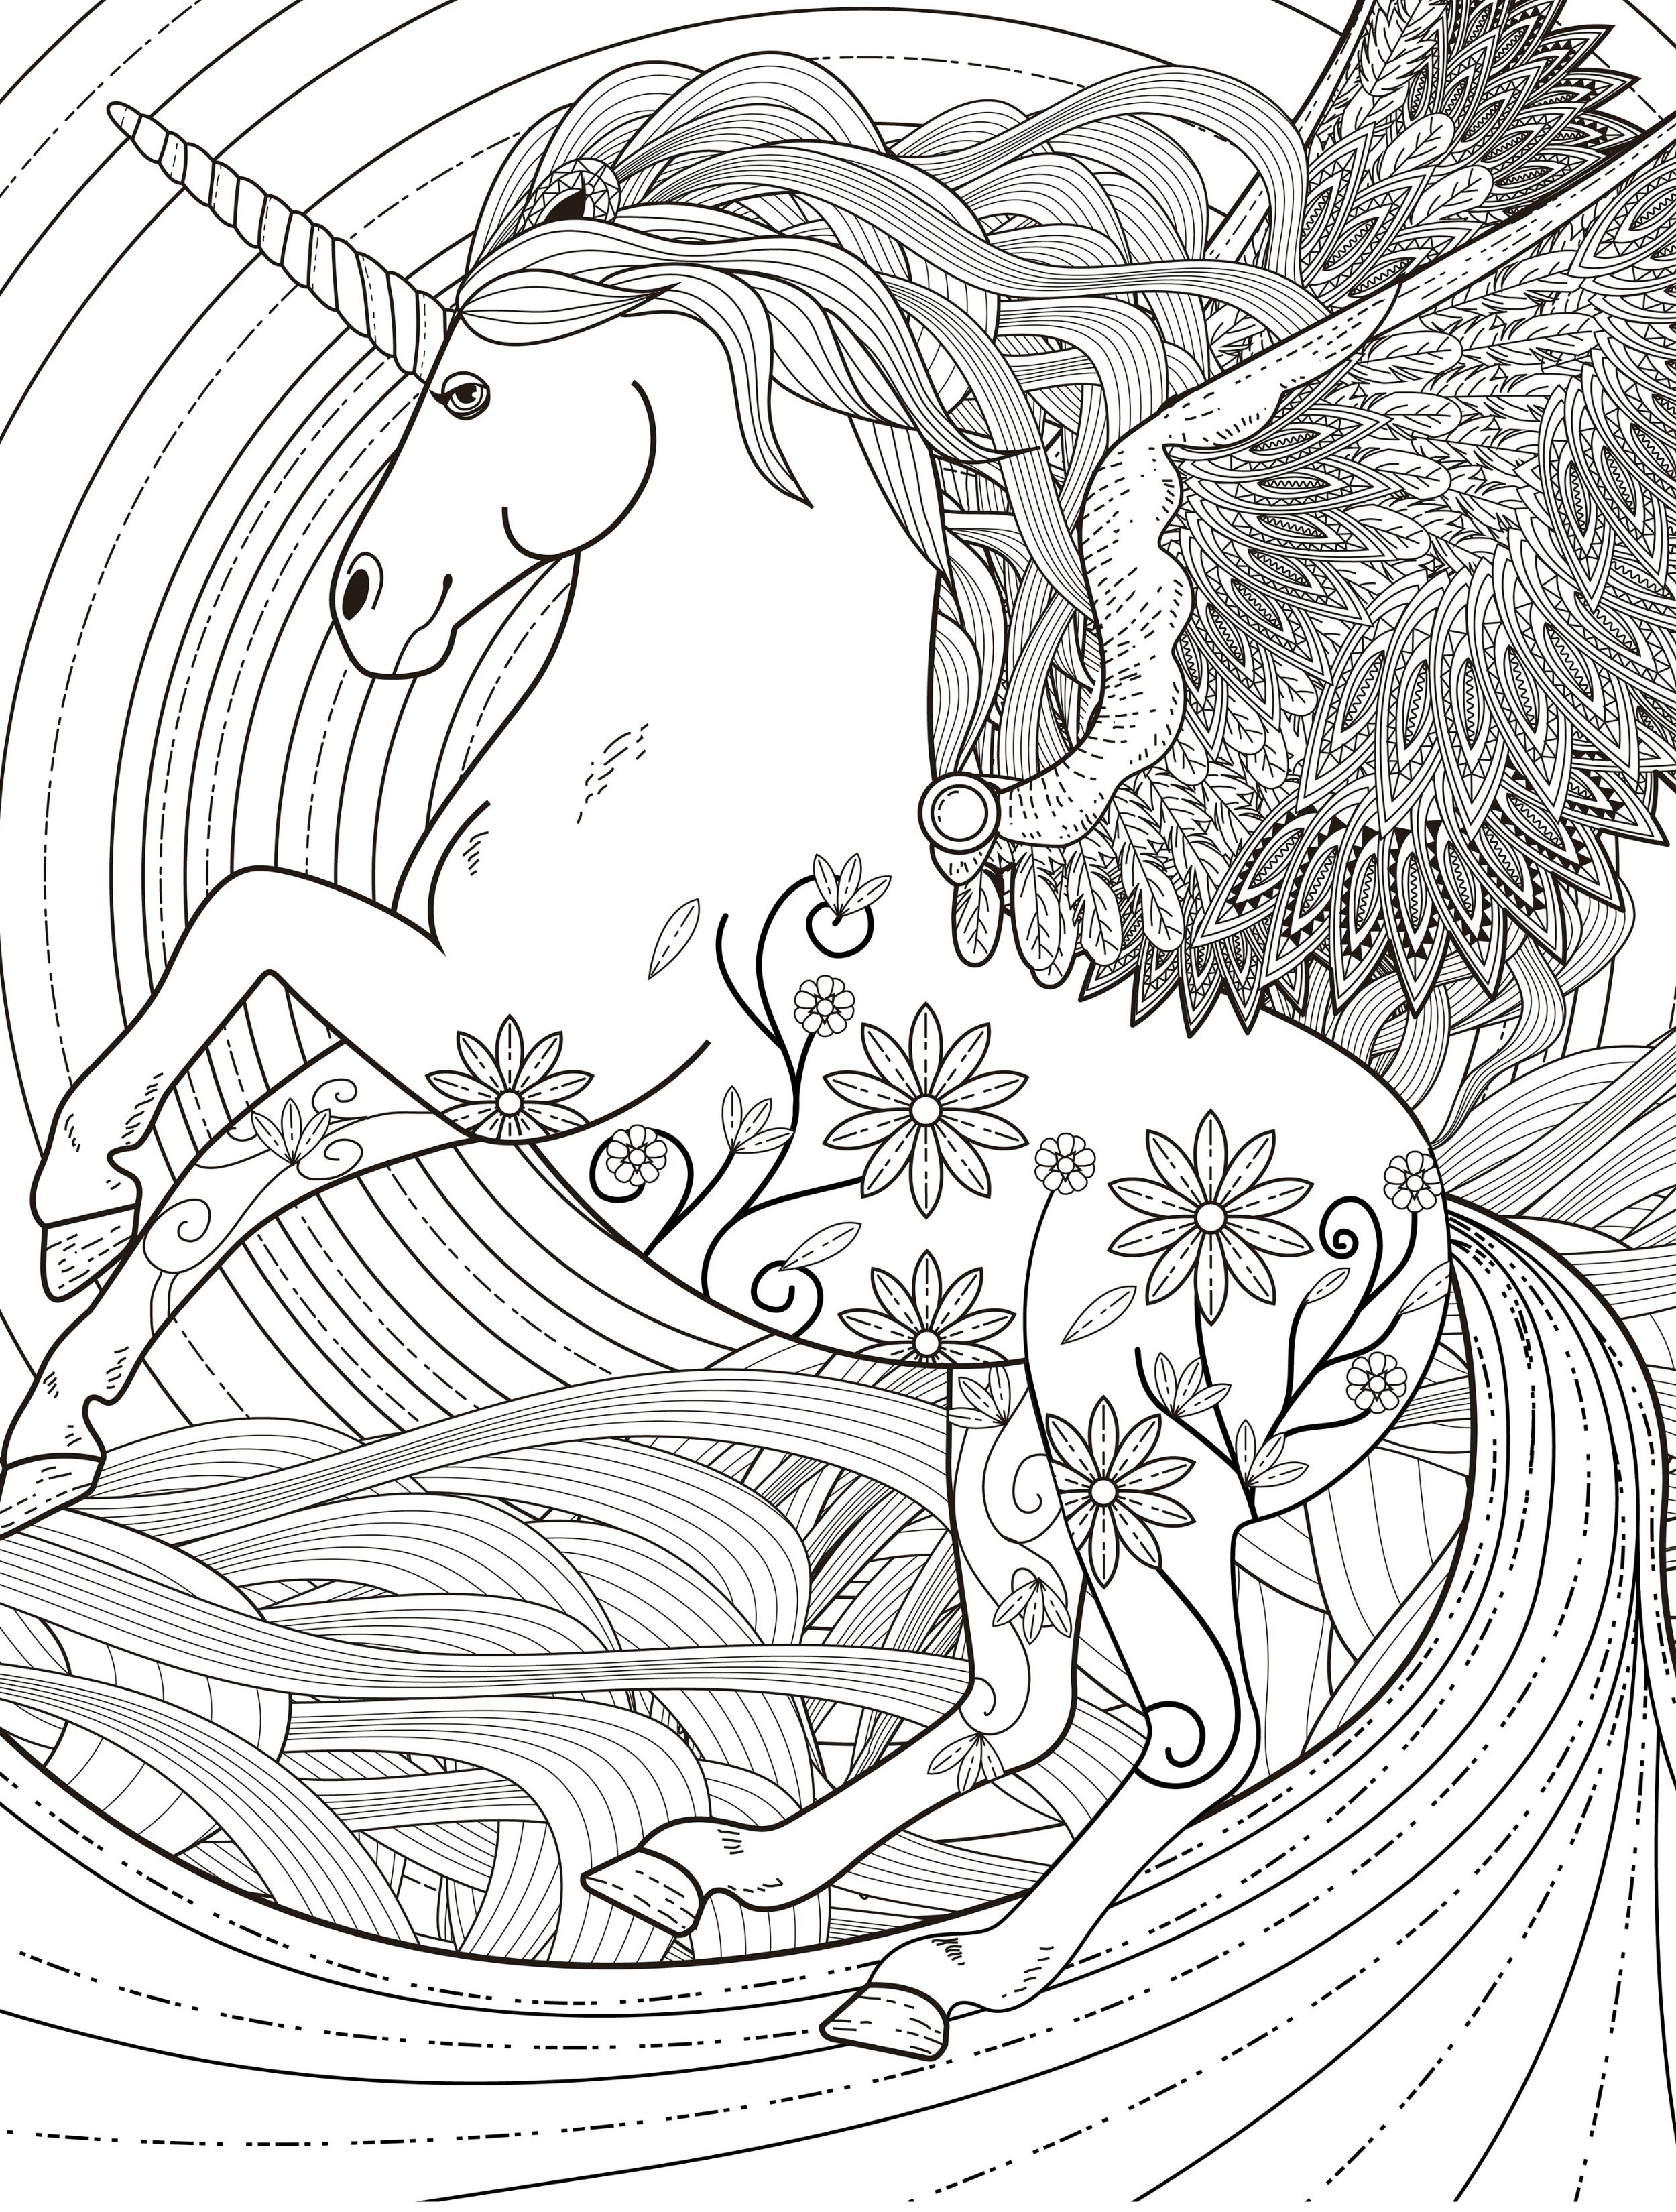 18 Absurdly Whimsical Adult Coloring Pages Kiddlings